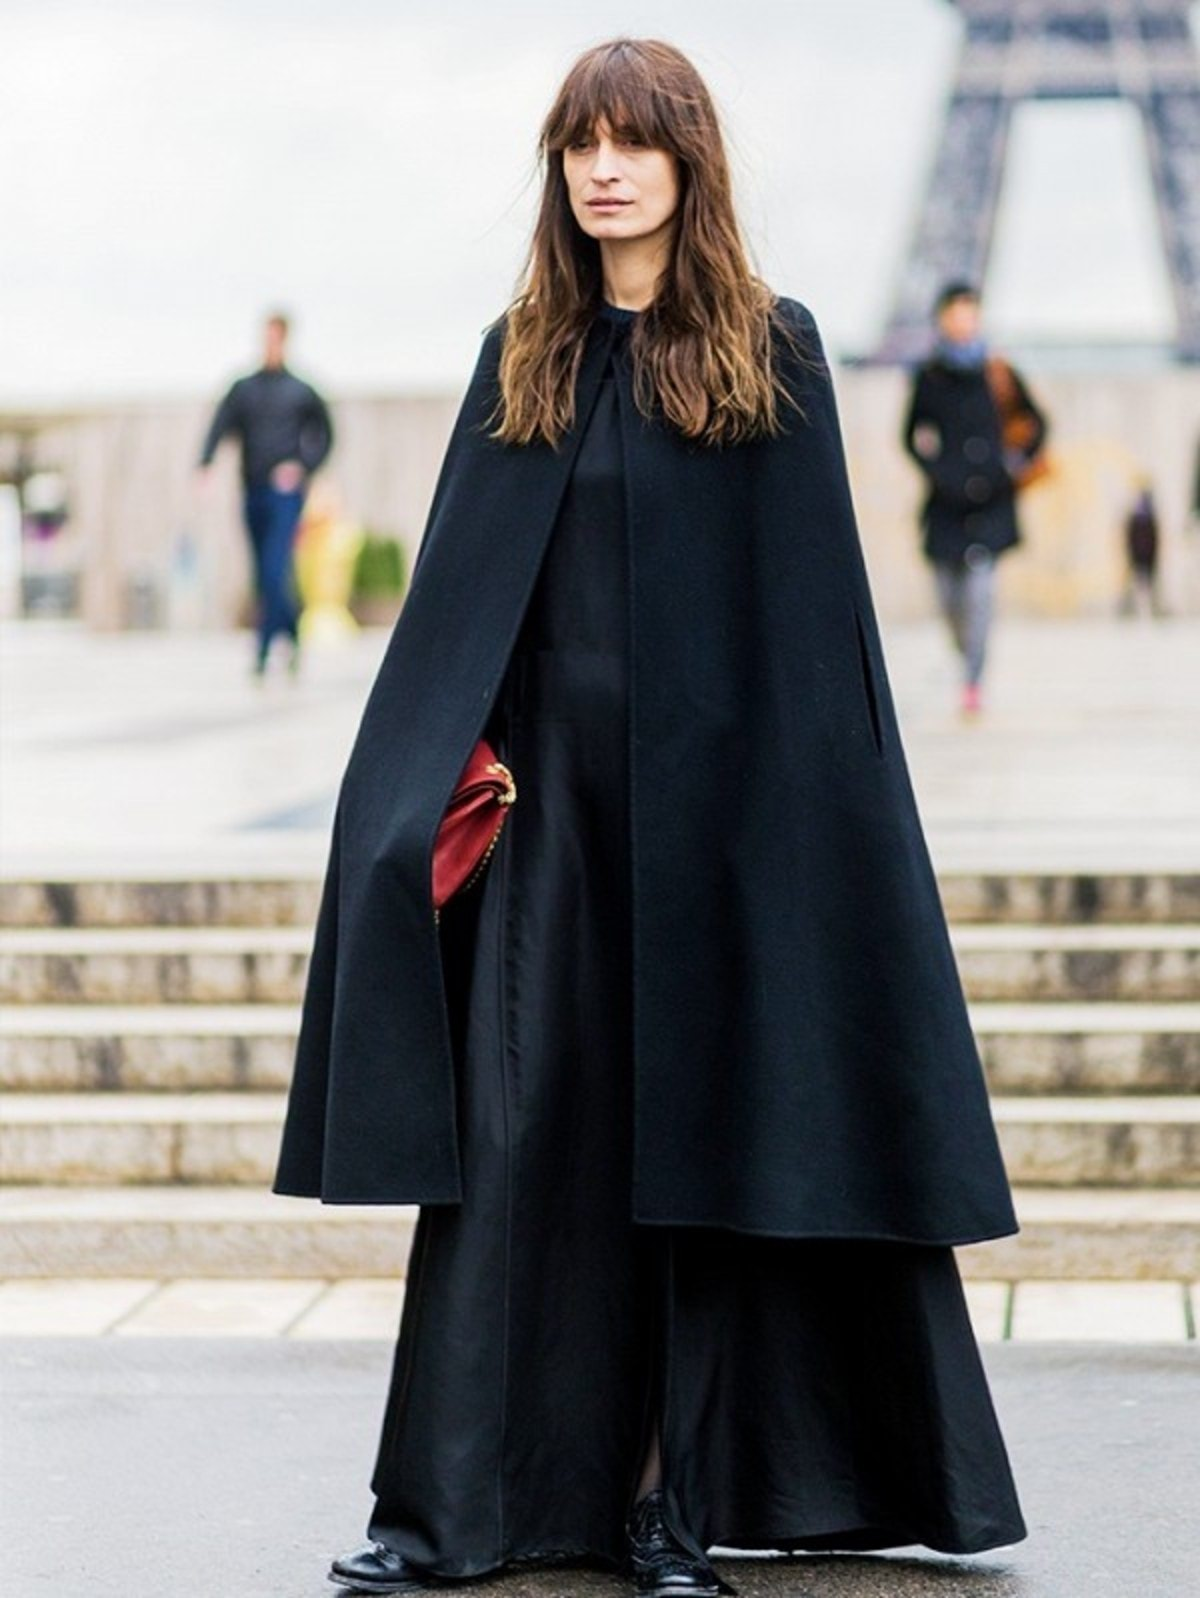 how-to-wear-a-cape-its-not-as-complicated-as-you-think-1877538-1471885588.600x0c (1)